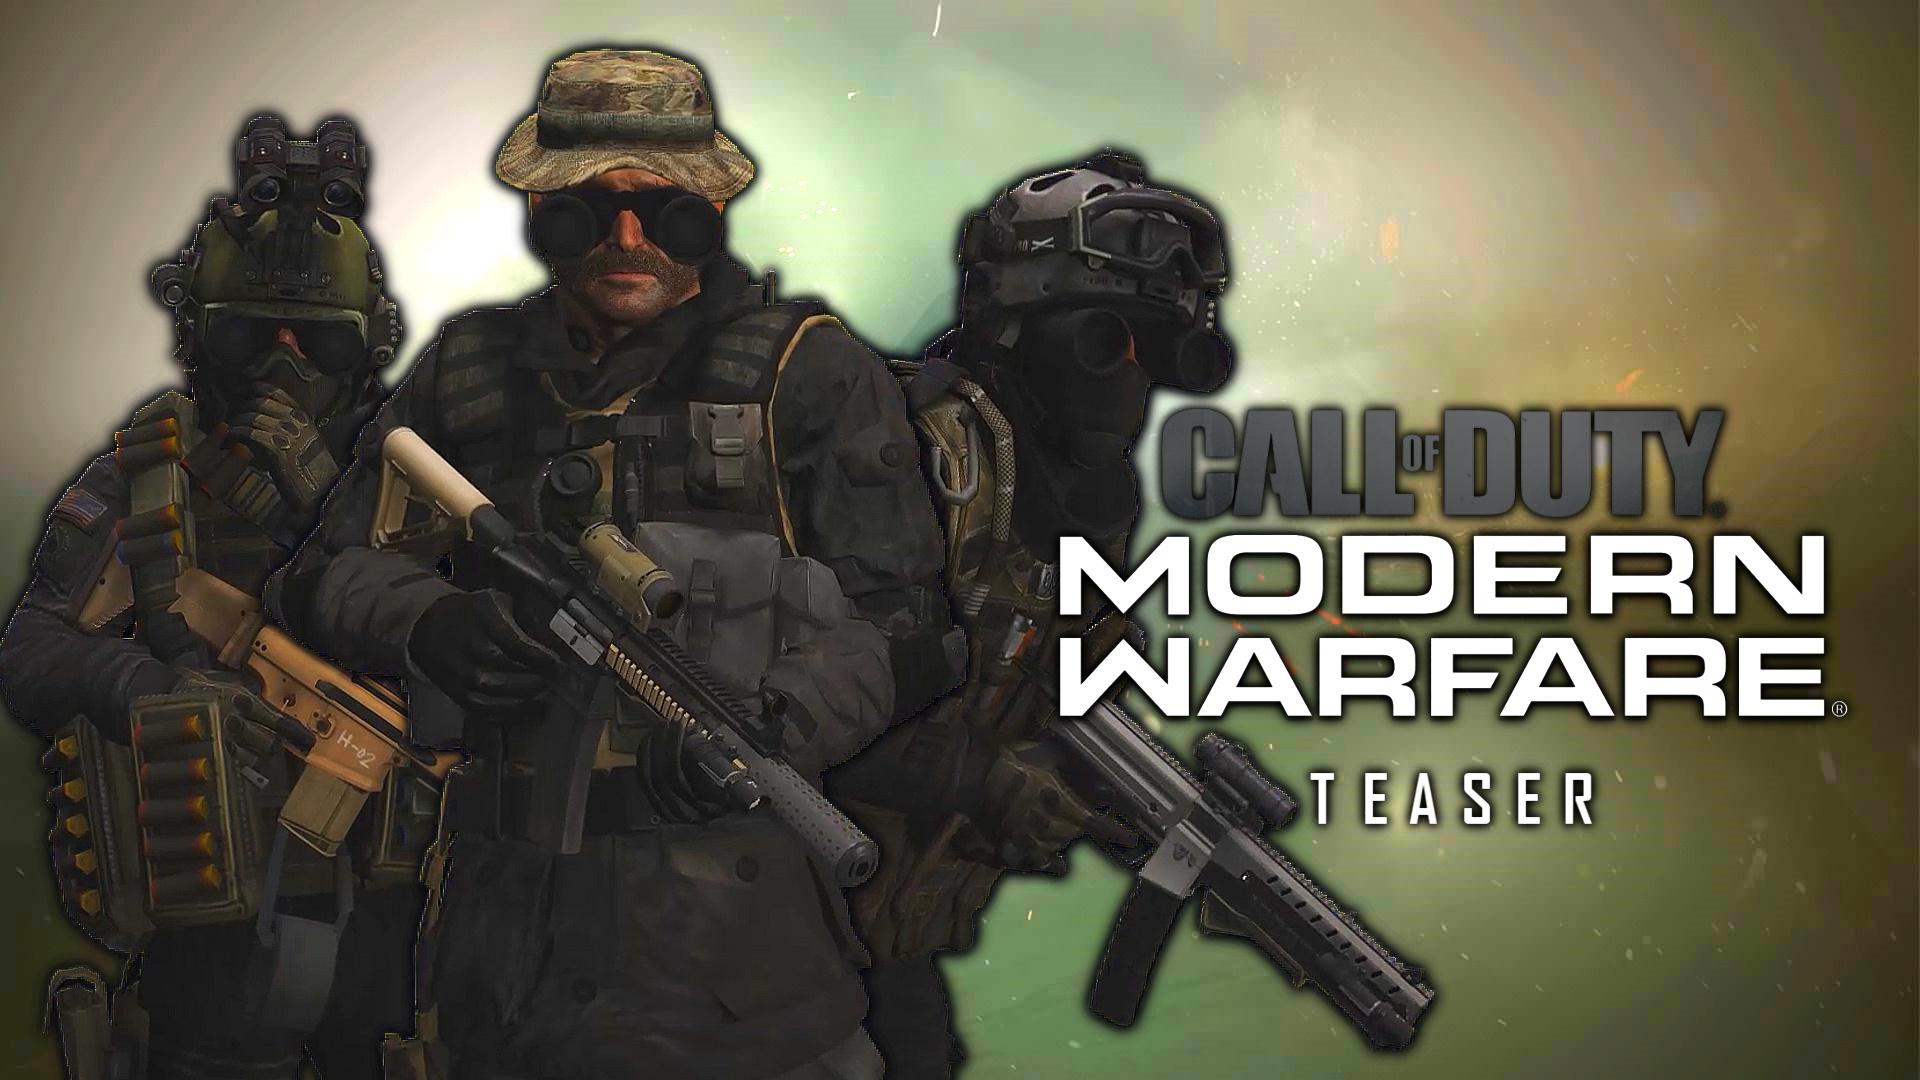 Modern Warfare Cpt Price And Squad With Nvgs Gta5 Mods Com